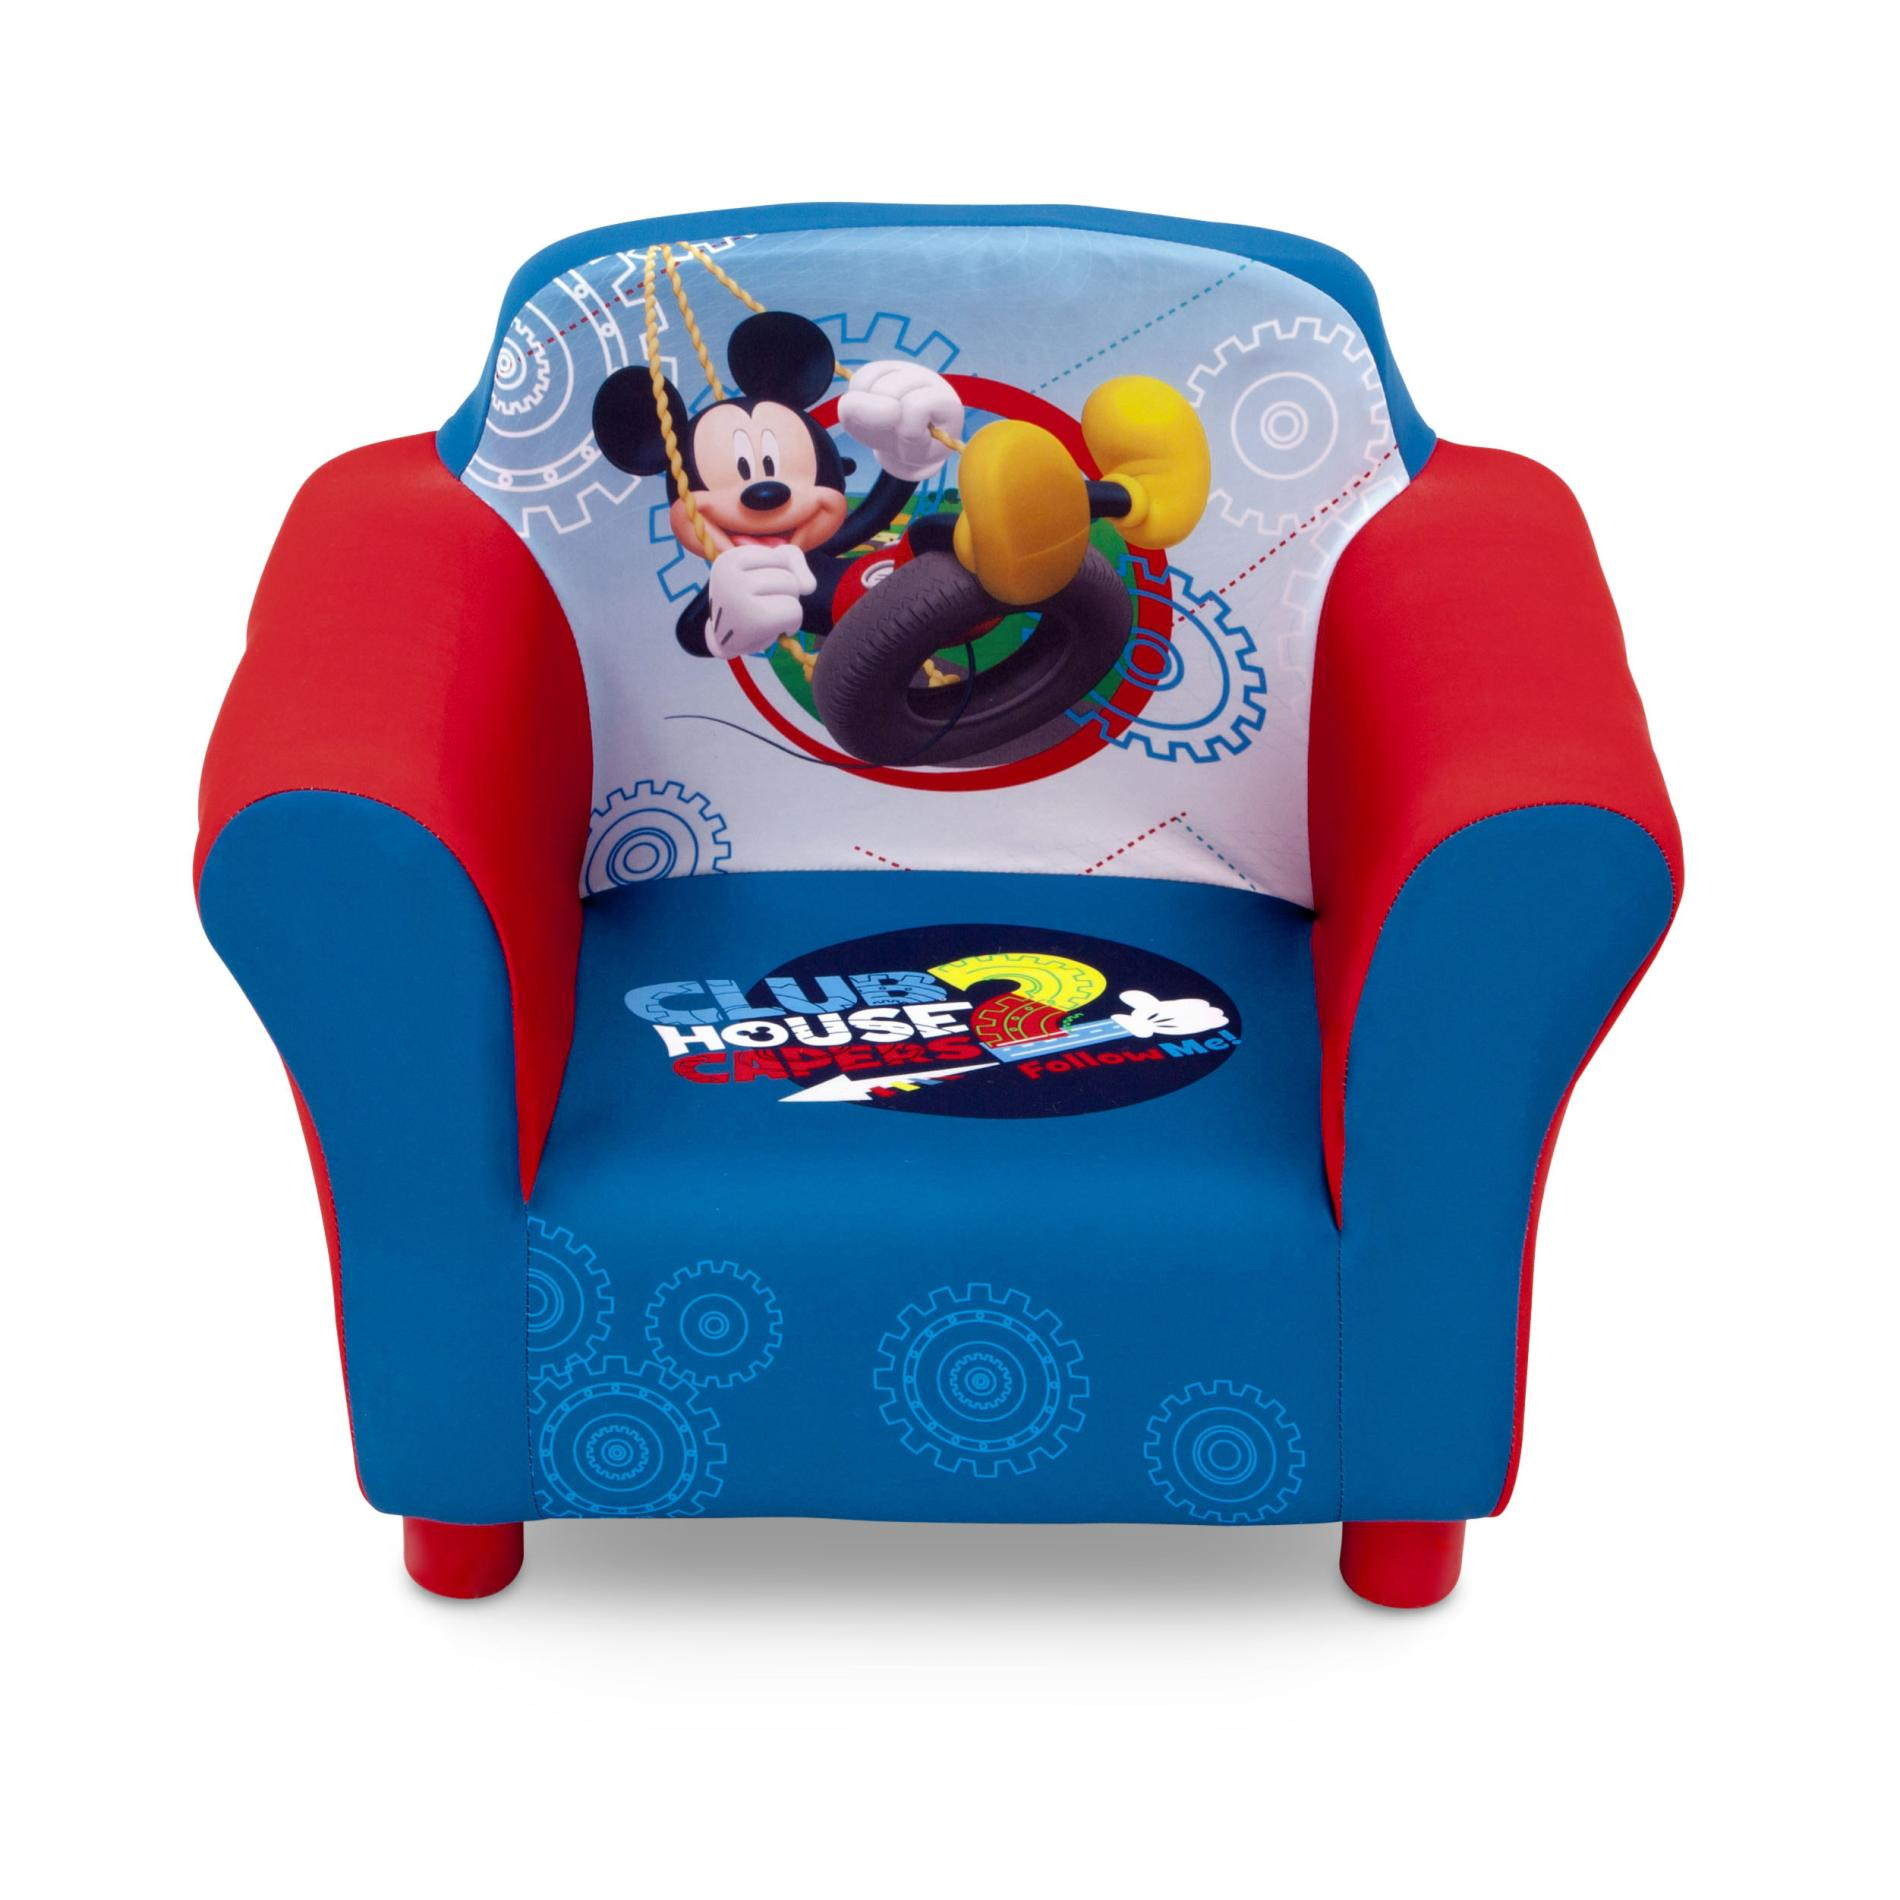 Toddler Chairs Disney Mickey Mouse Clubhouse Toddler Boy 39s Upholstered